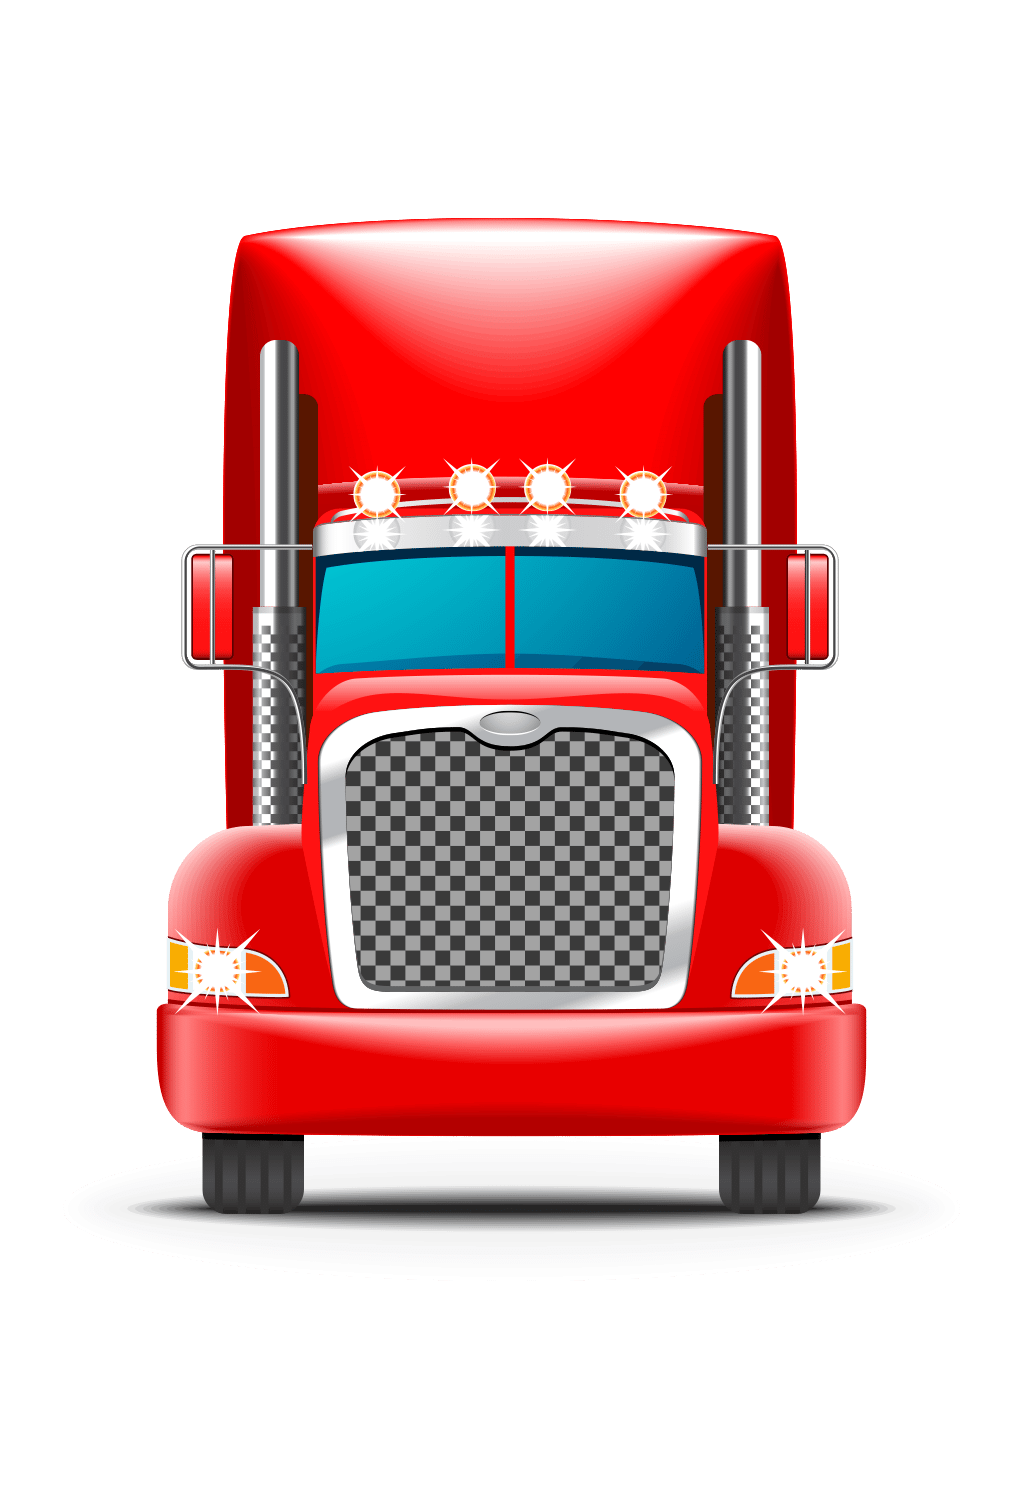 A Day in the life of a Drayman • Learn more about Drayage